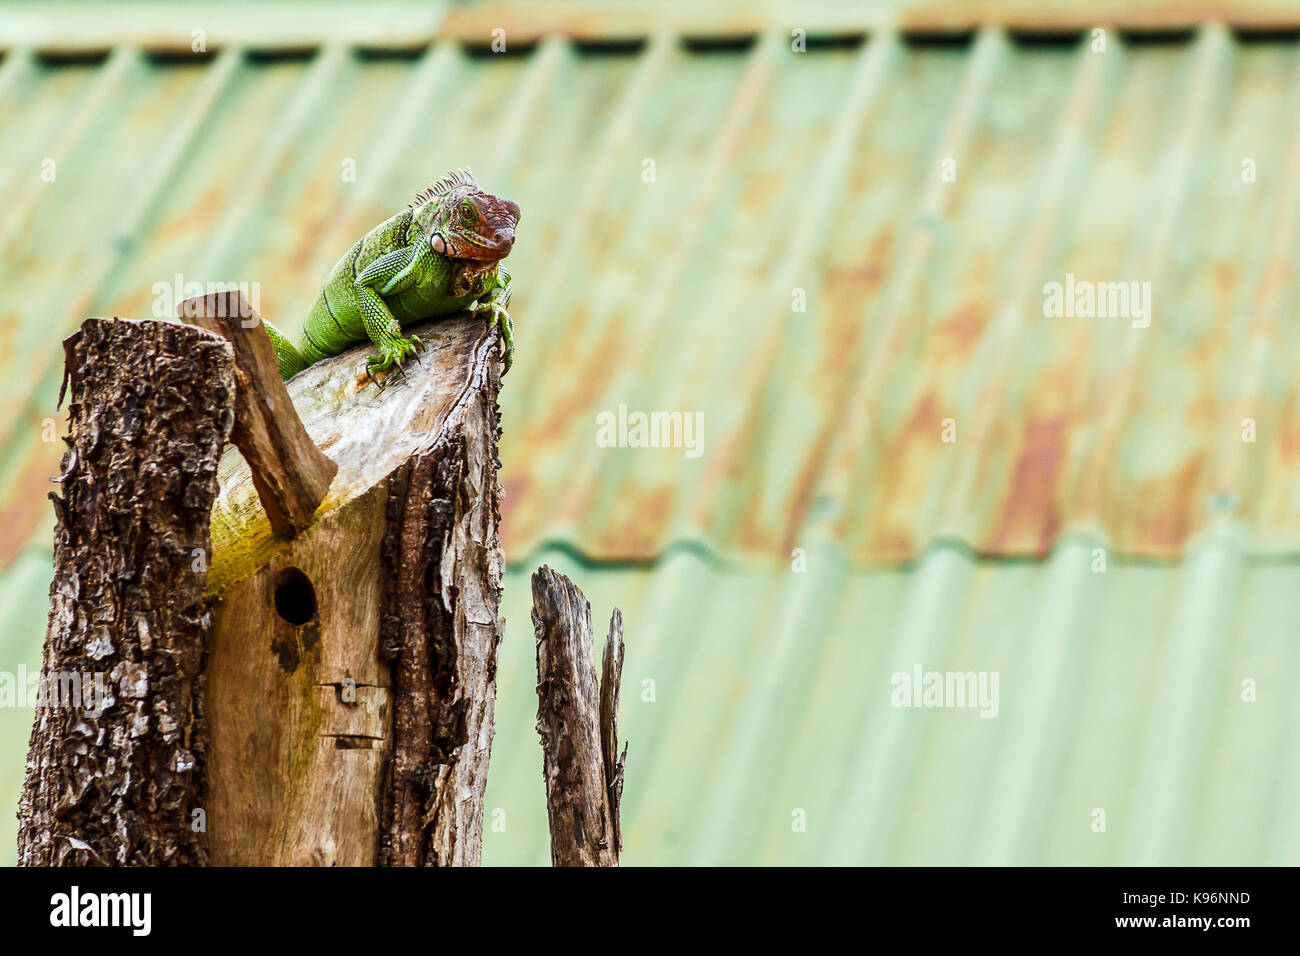 Metal Lizard Stock Photos & Metal Lizard Stock Images - Alamy